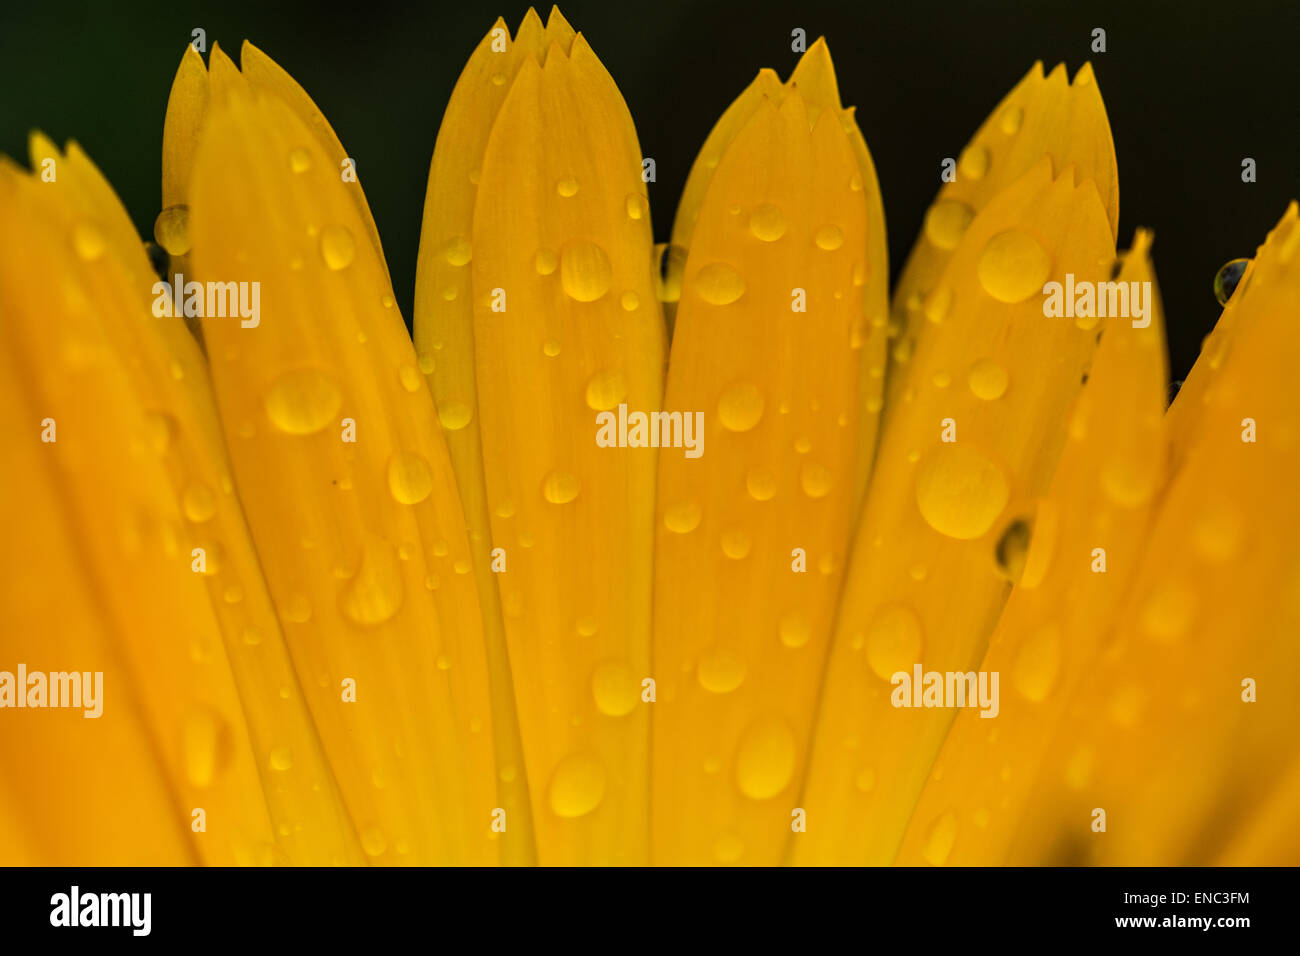 Close up shot of petals of a calendula flower with water droplets on - Stock Image